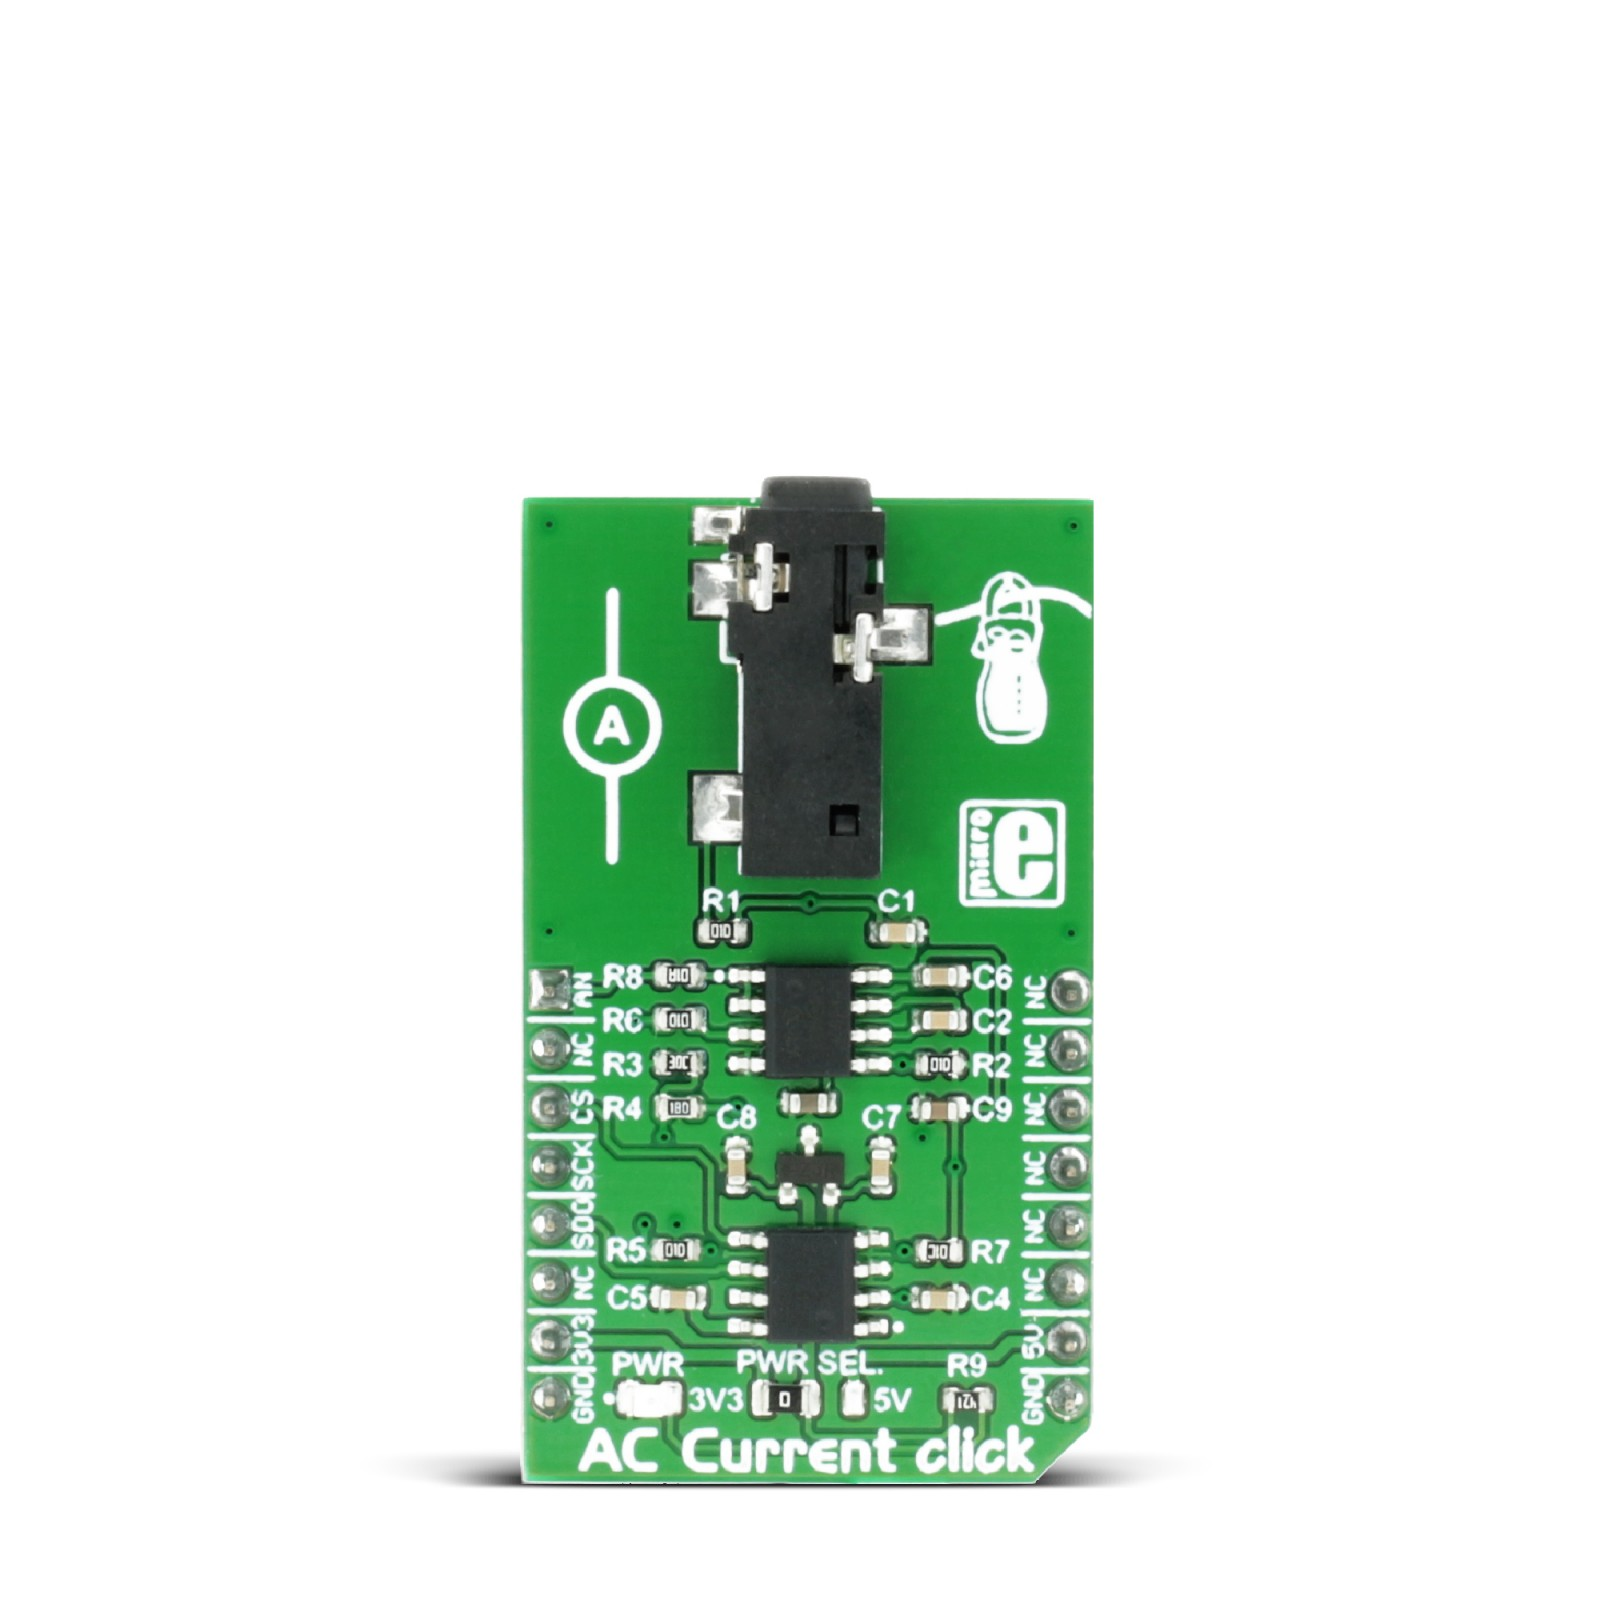 Ac Current Click Board With Mcp3201 Adc Converter From Microchip How To Build 110 And 220v Led Voltage Indicator Mgctlbxnmzp Mgctlbxv5112 Mgctlbxlc Mgctlbxpprestashop